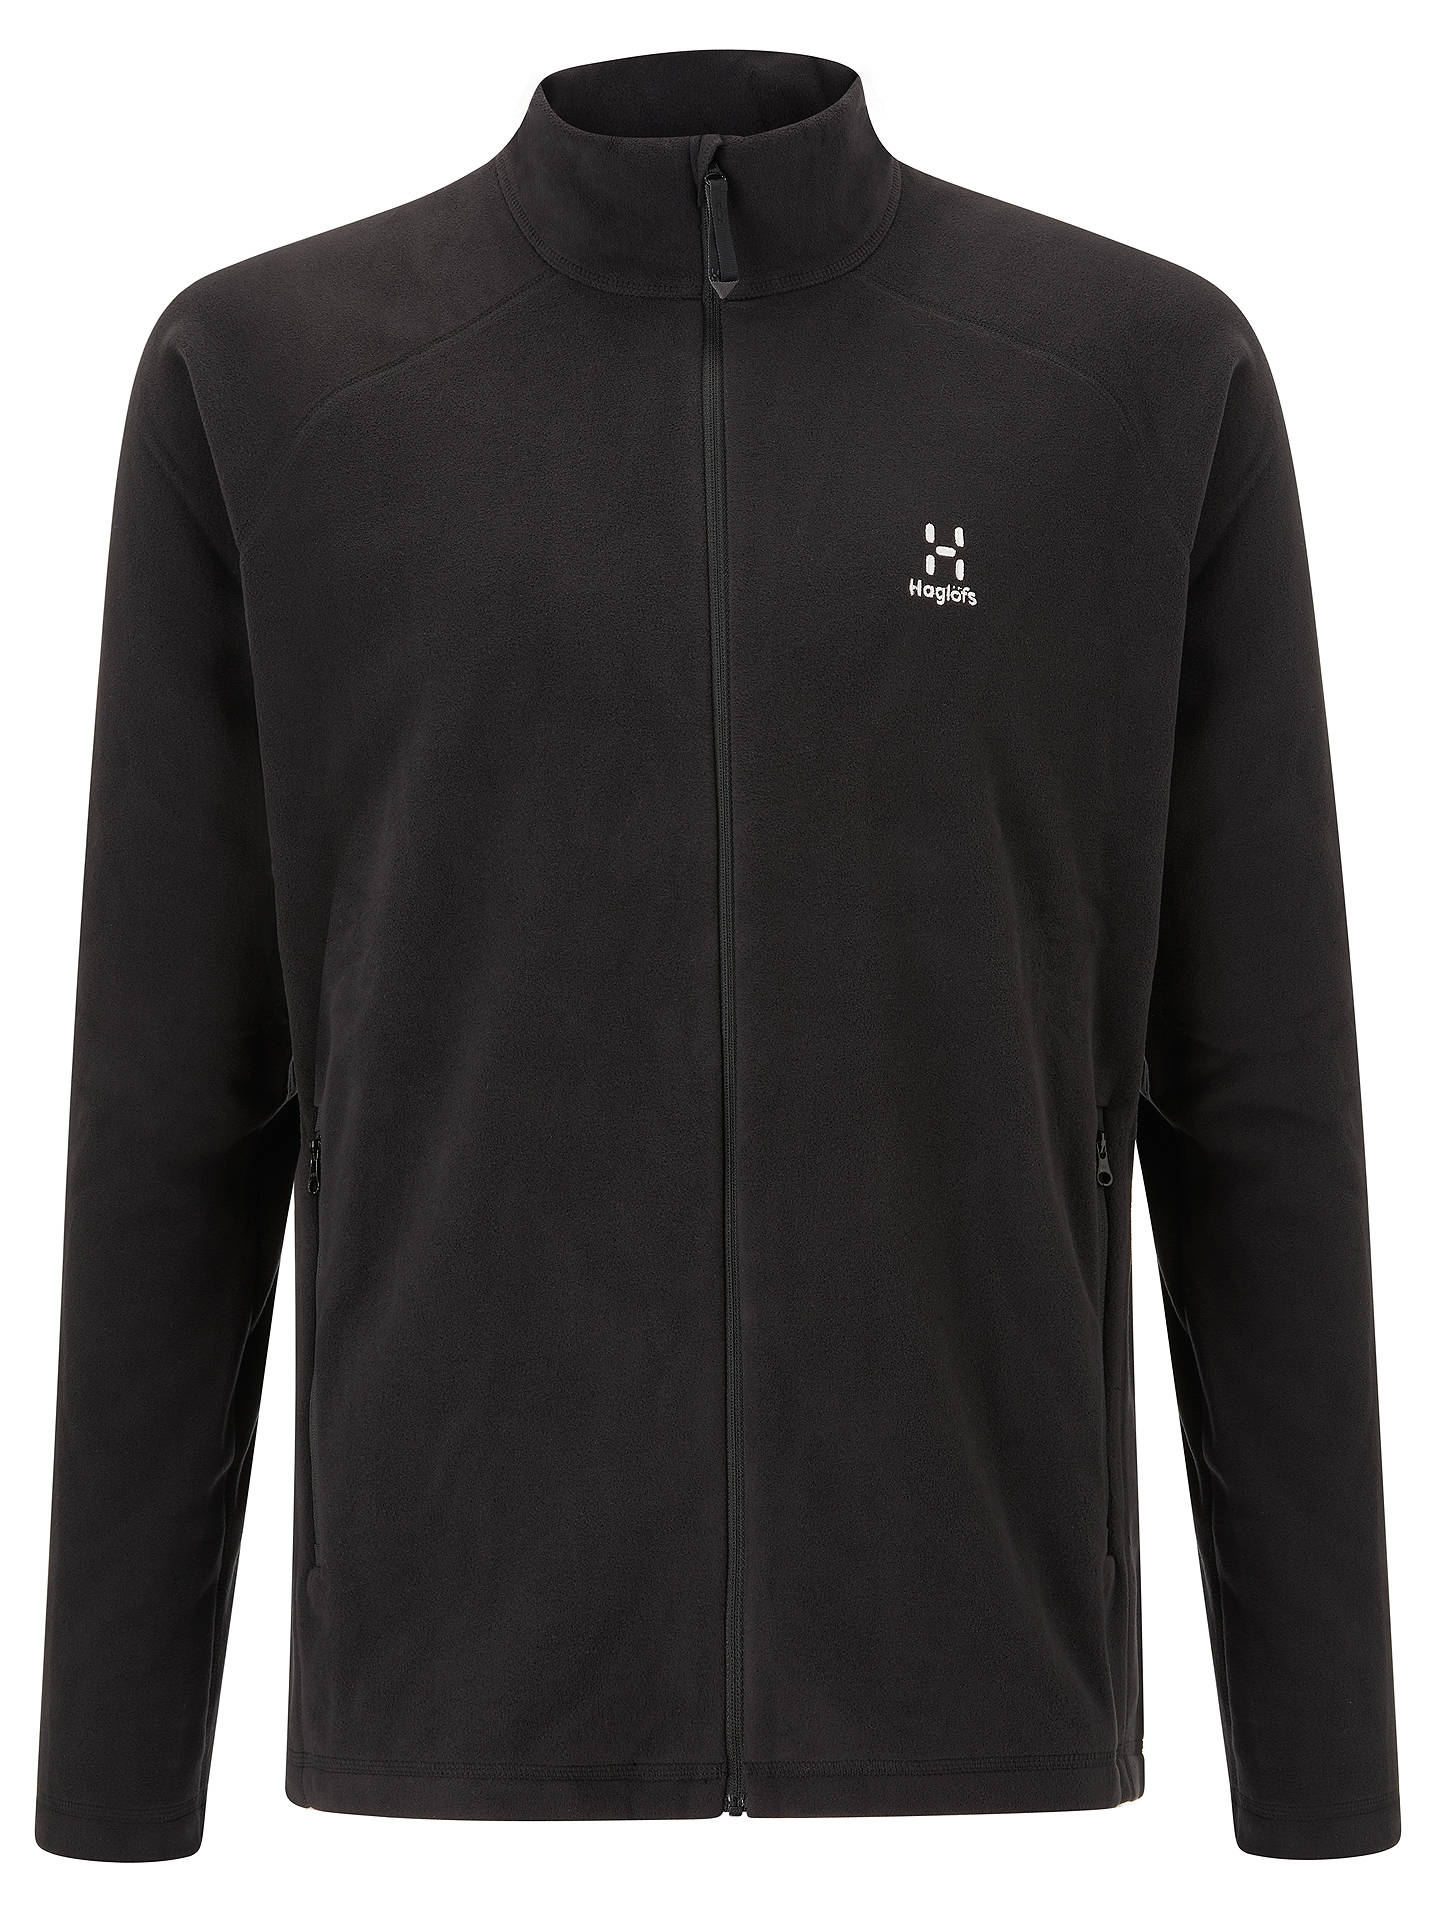 Jackets & Waterproofs Haglofs Mens Astro Jacket Black